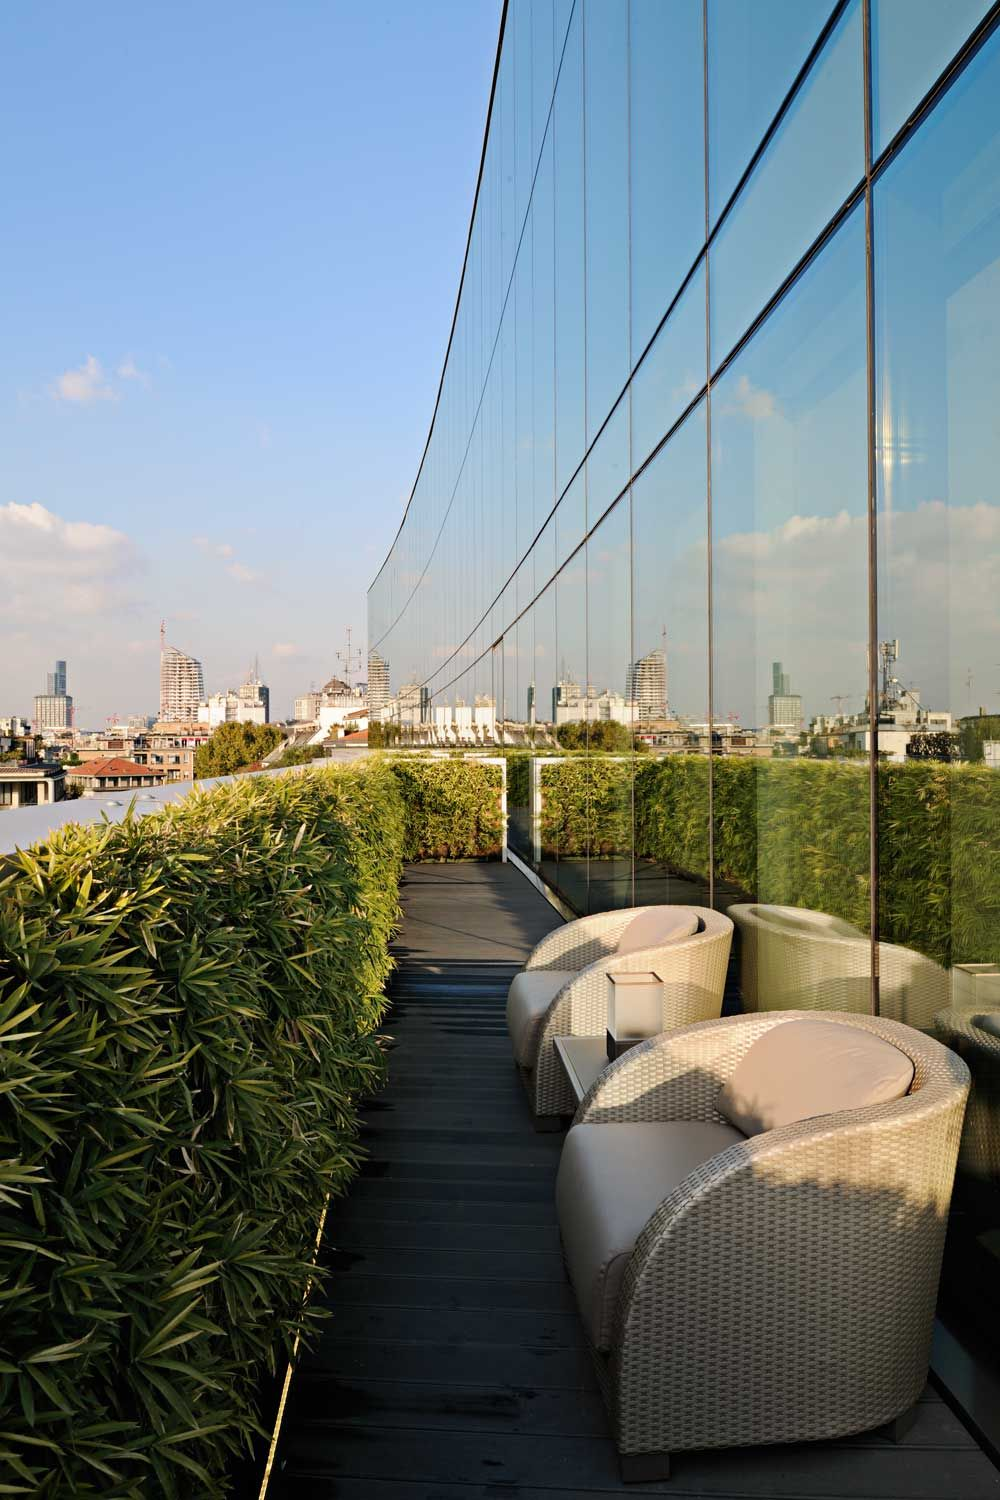 Terrace With A View Of The City At The Armani Hotel Milano In